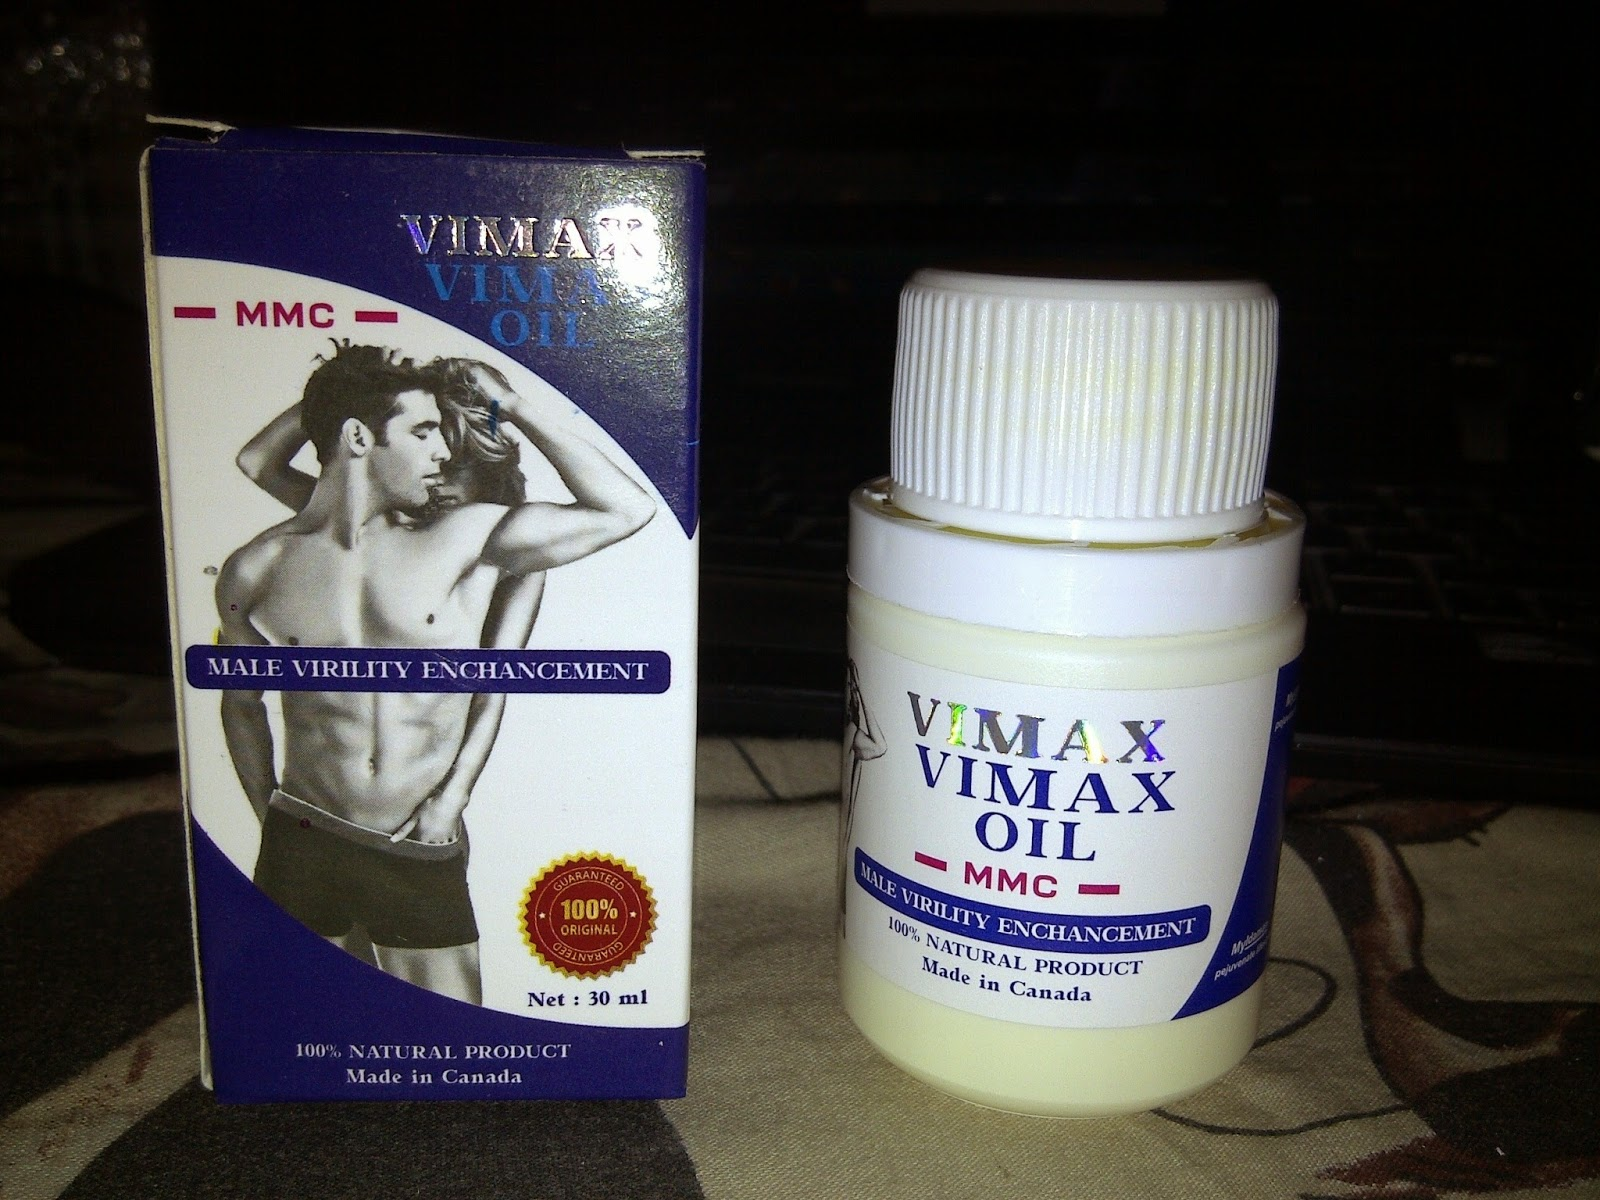 vimax oil canada asli grosir herbal murah